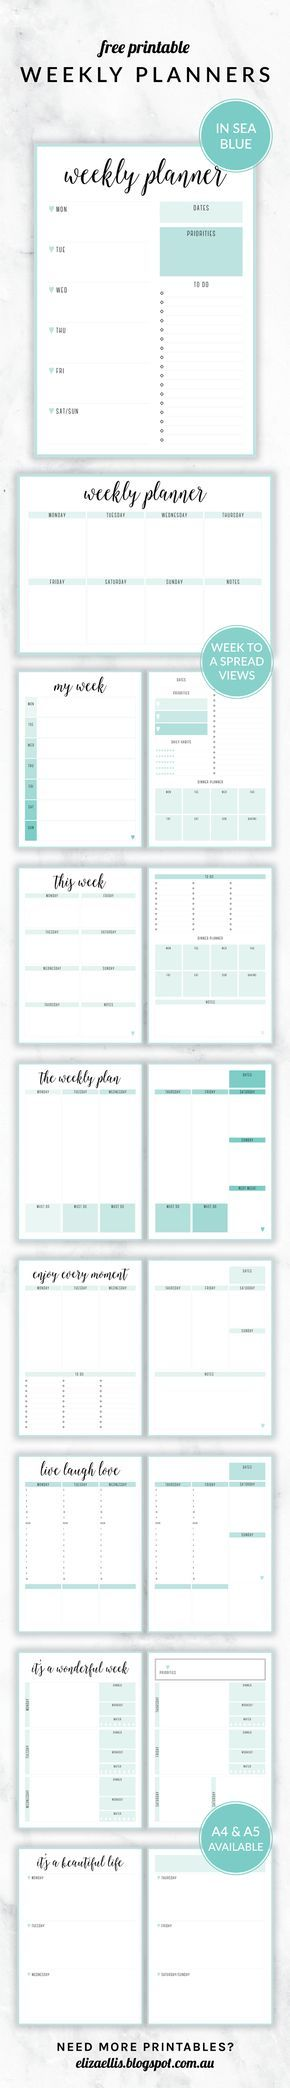 Free Printable Irma Weekly Planners in the color Sea by Eliza Ellis. With nine different styles, they're the perfect organizing solution for mums, entrepreneurs, bloggers, etsy sellers, professionals, WAHM's, SAHM's, students and moms. Available in 6 colors and both A4 and A5 sizes. Includes week to a page planners as well as week to a spread and two page planners. Enjoy!